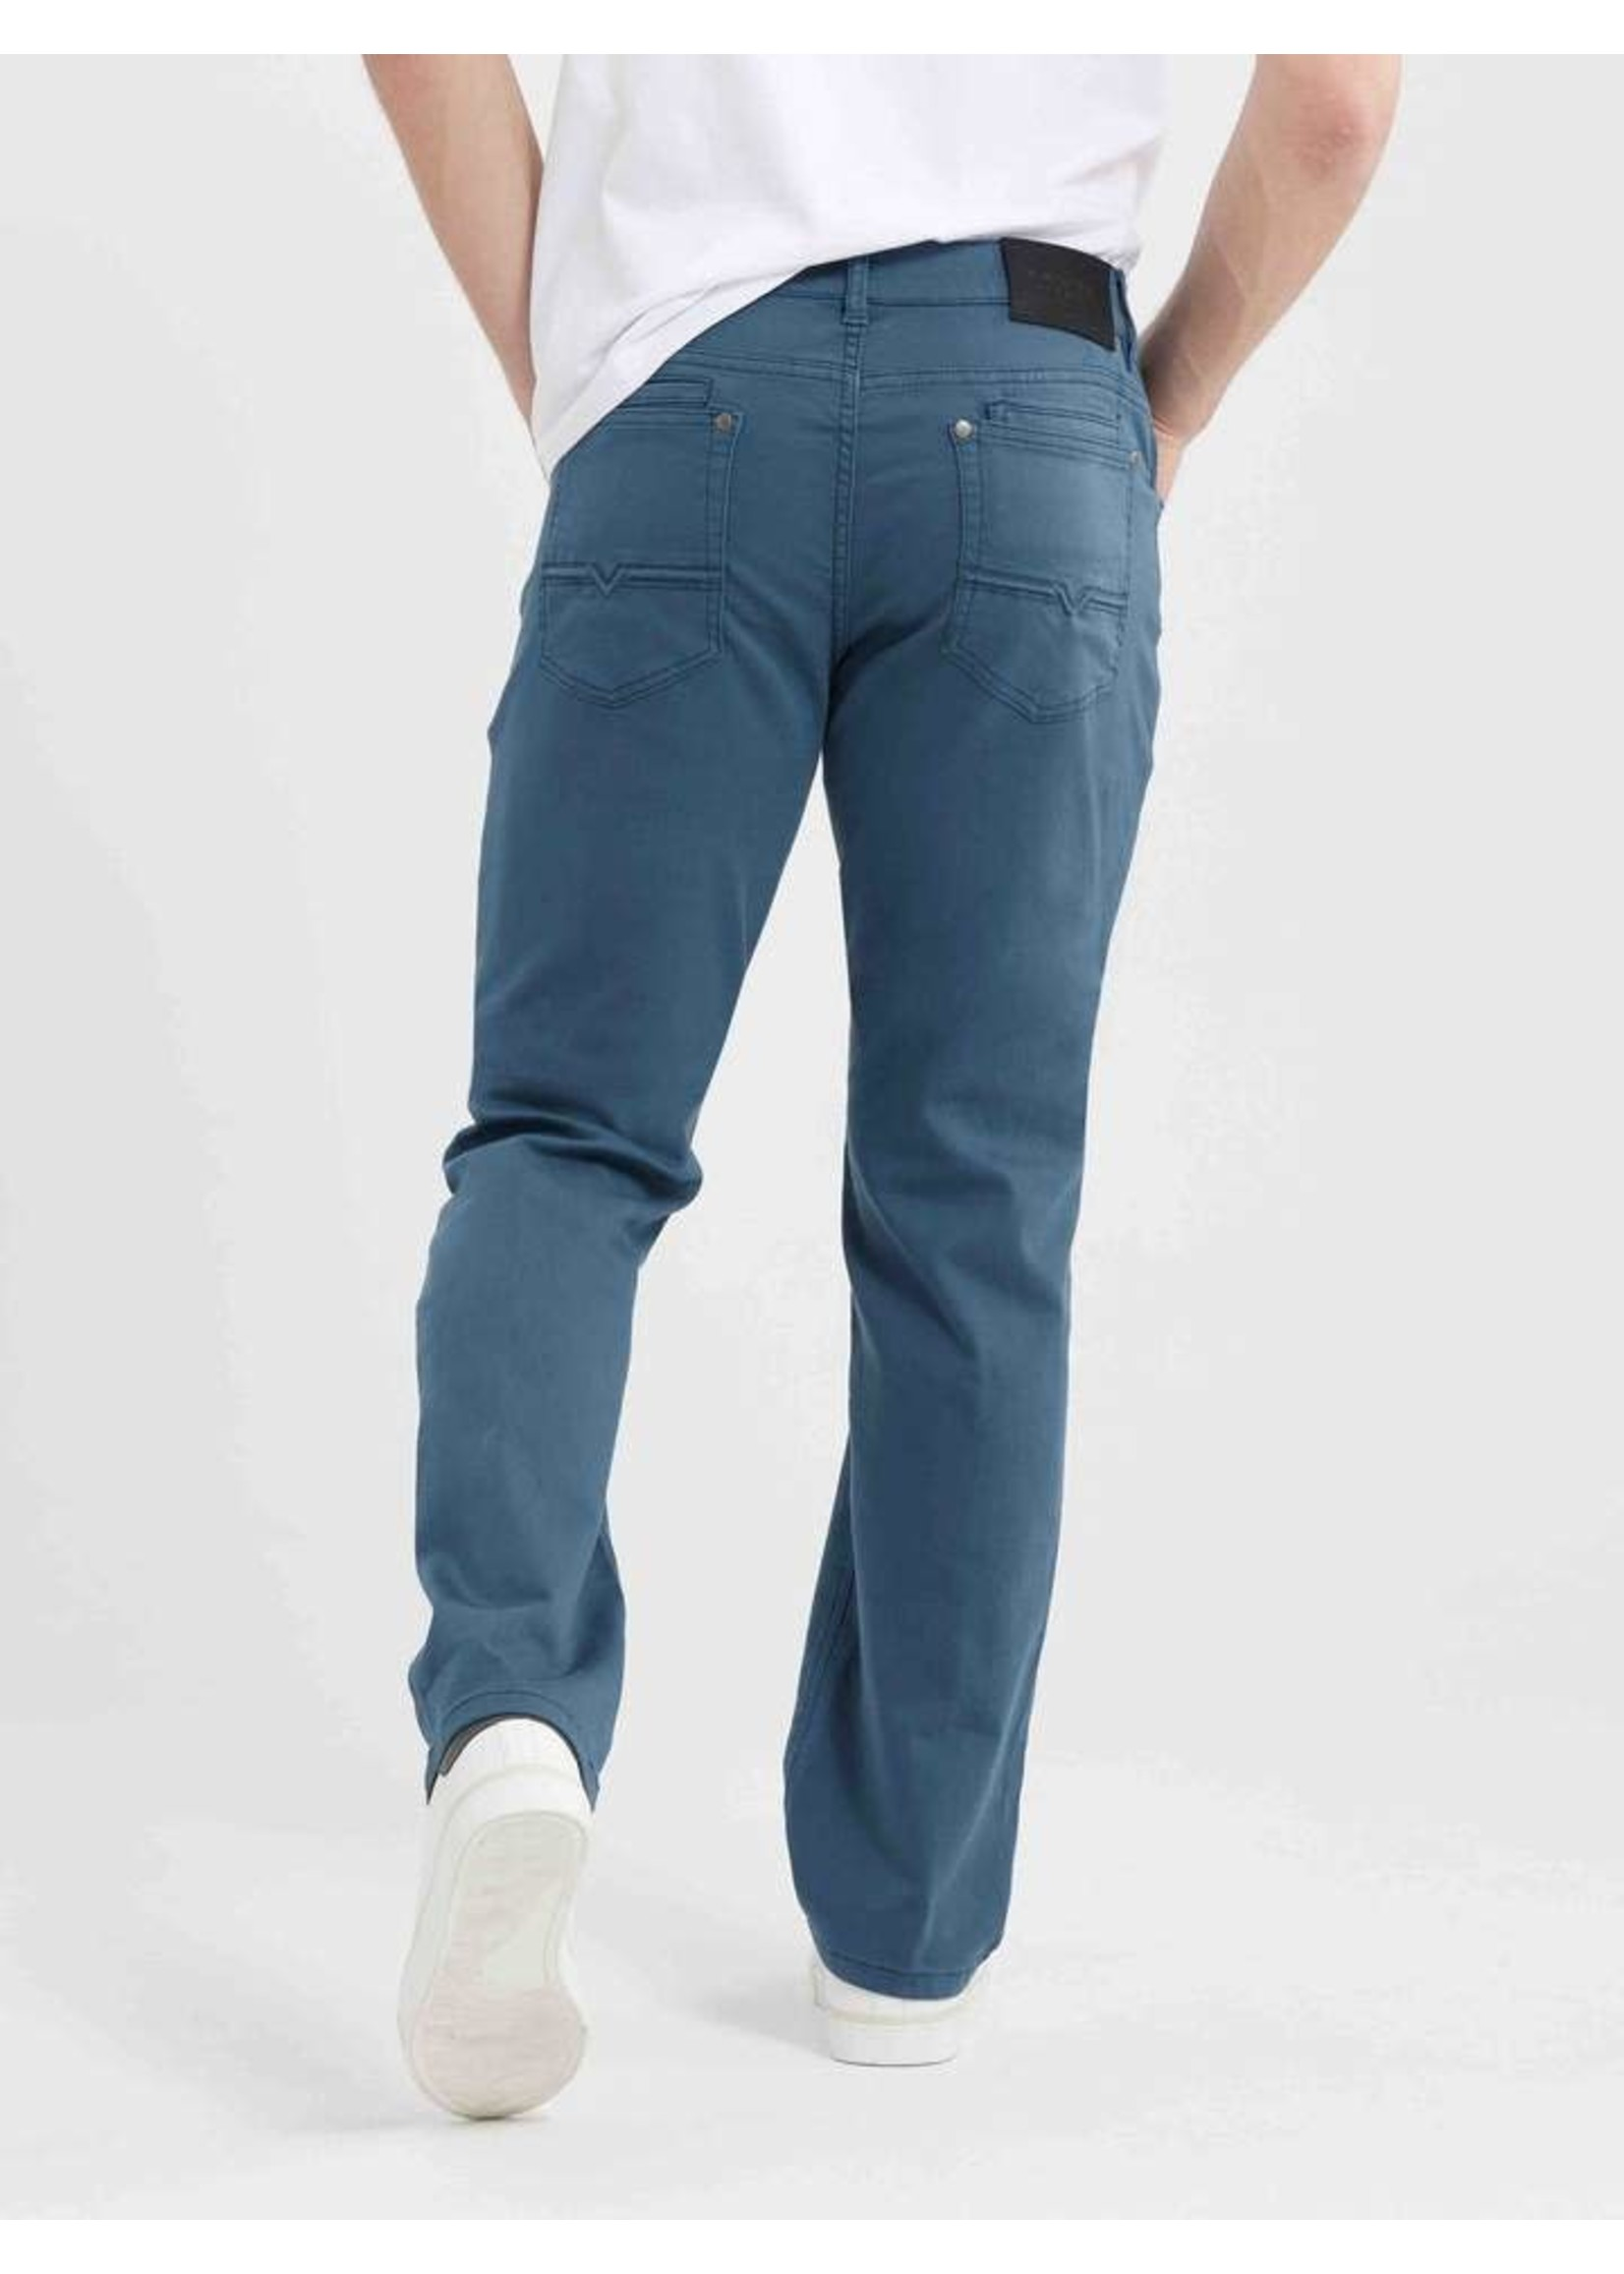 """Lois Jeans Canada The """"Mad 7700-86"""" by Lois Jeans"""